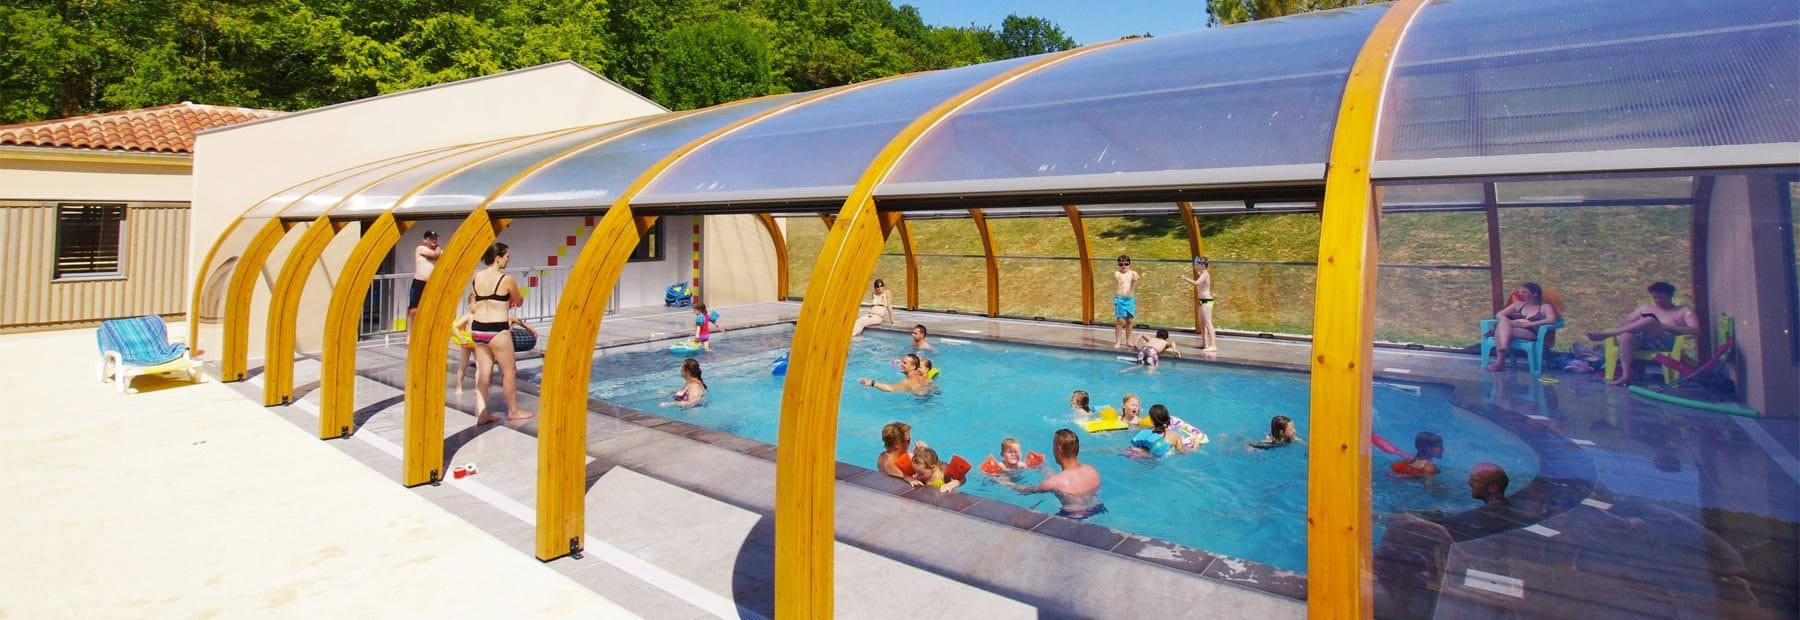 Piscine Couverte Of Camping 4 Toiles Dordogne Location Chalet Mobilhome